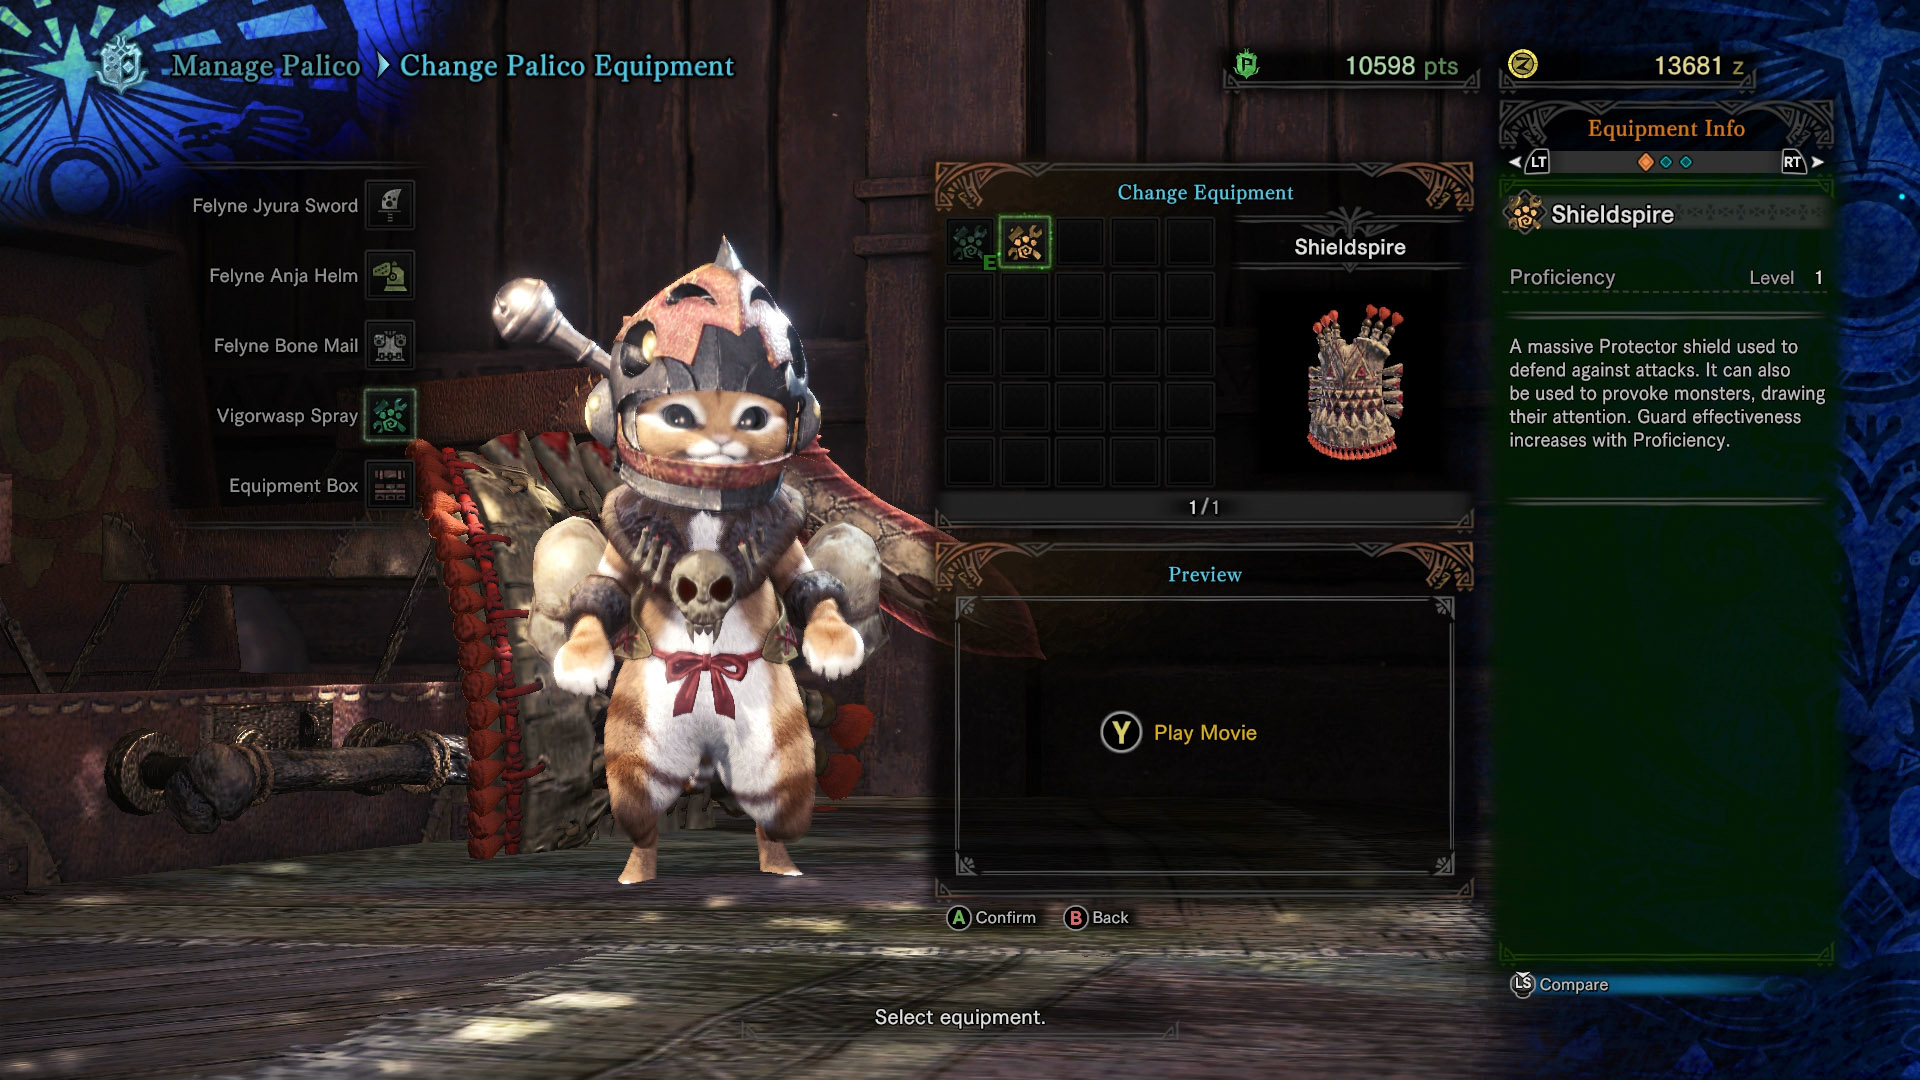 Monster hunter world palico guide palico armor and weapons guide for example when you eventually take down the powerful anjanath as part of the story of monster hunter world you can then go back to the smithy and craft solutioingenieria Image collections